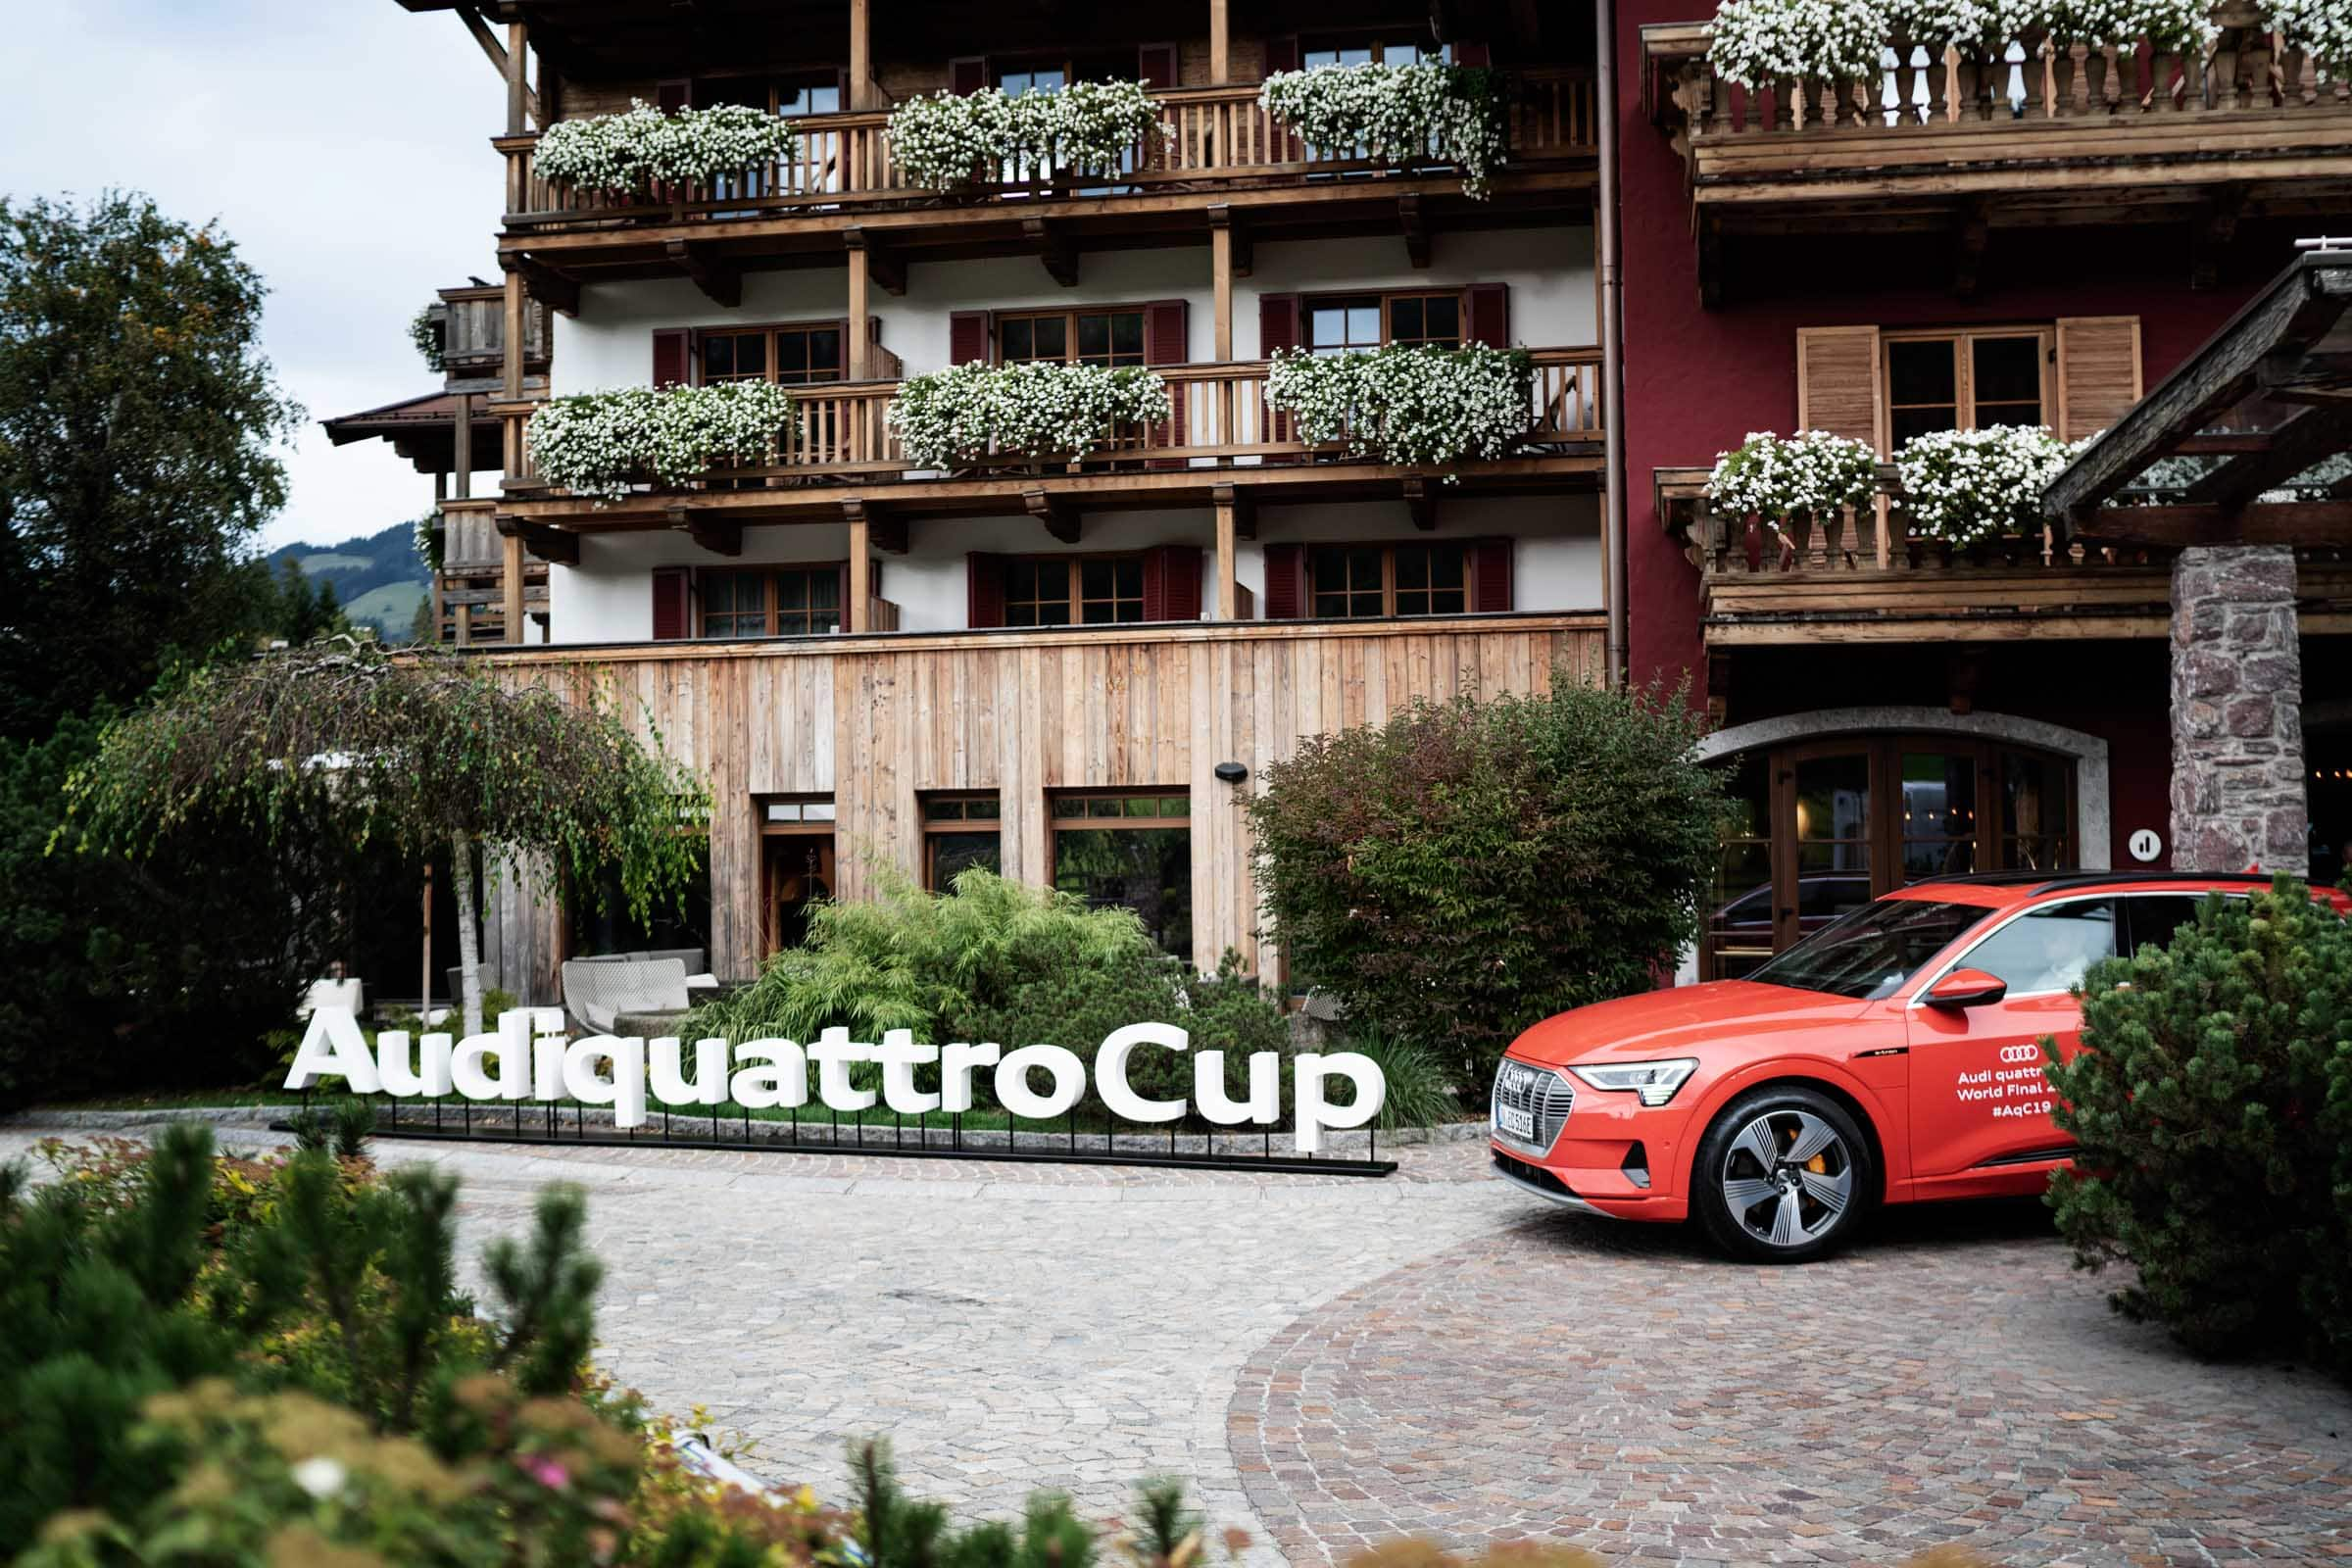 MF_2019_0922_AUDIQUATTROCUP_1055.jpg